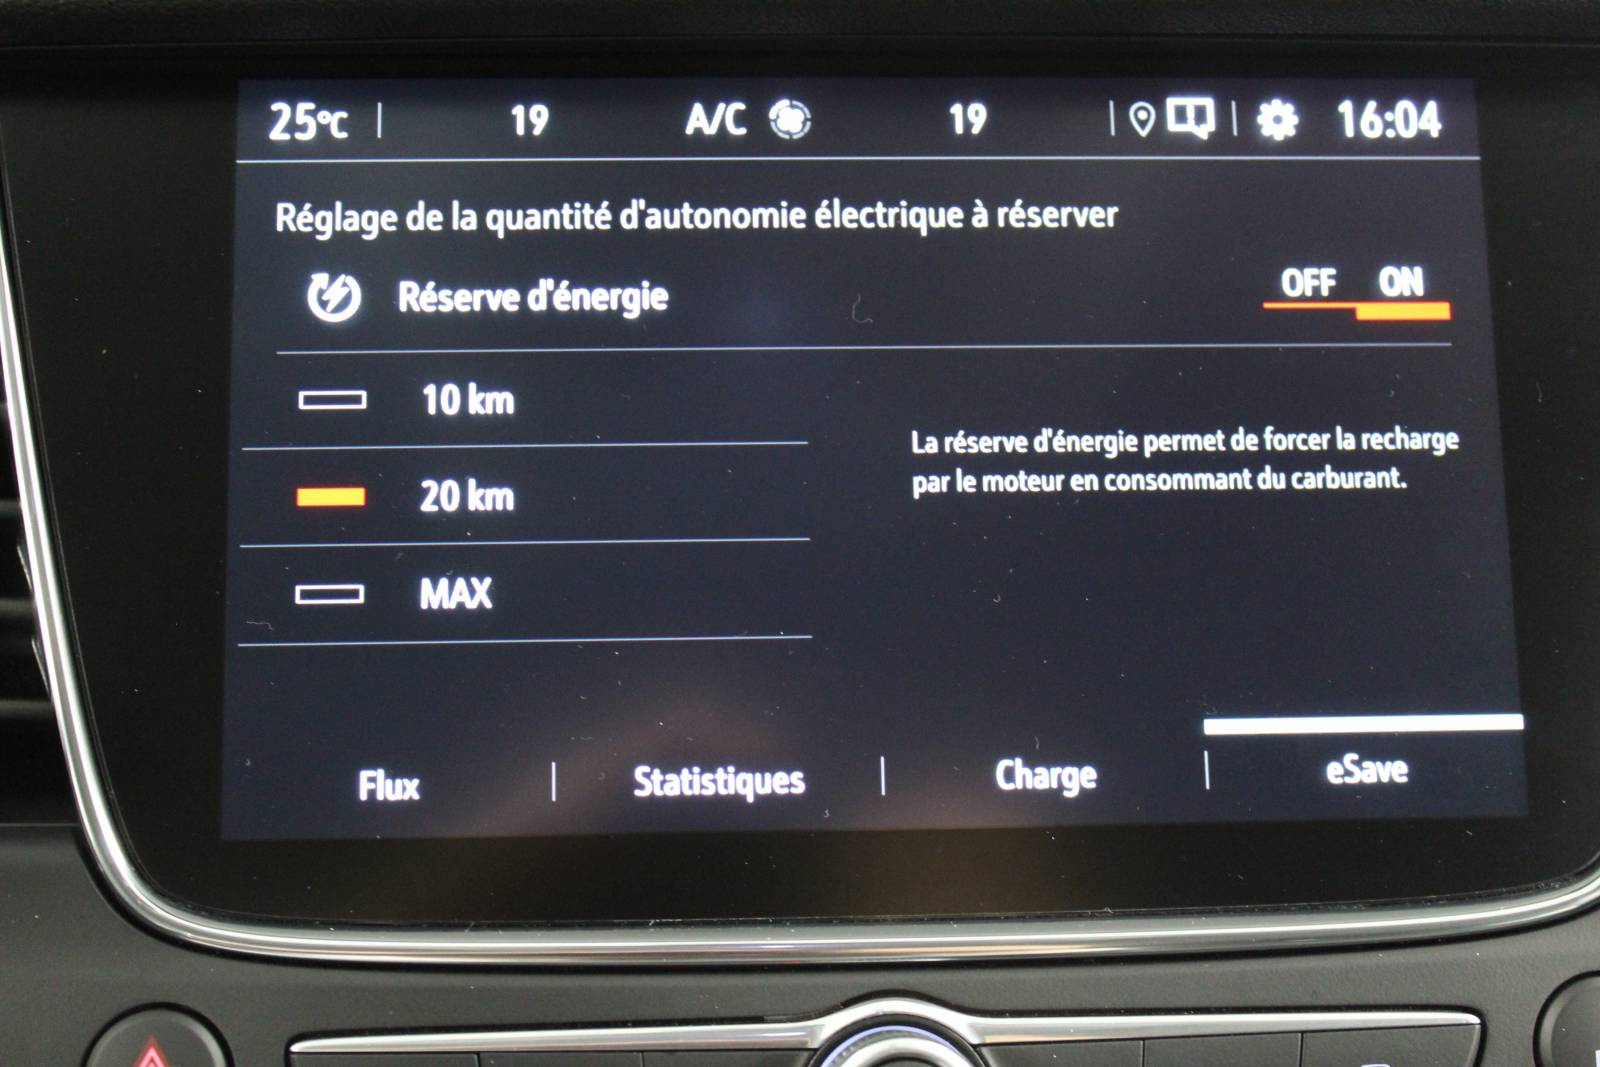 OPEL Grandland X Hybrid4 300 ch AWD BVA8 - véhicule d'occasion - Site Internet Faurie - Opel - Faurie Motor Charente Angouleme - 16160 - Gond-Pontouvre - 24